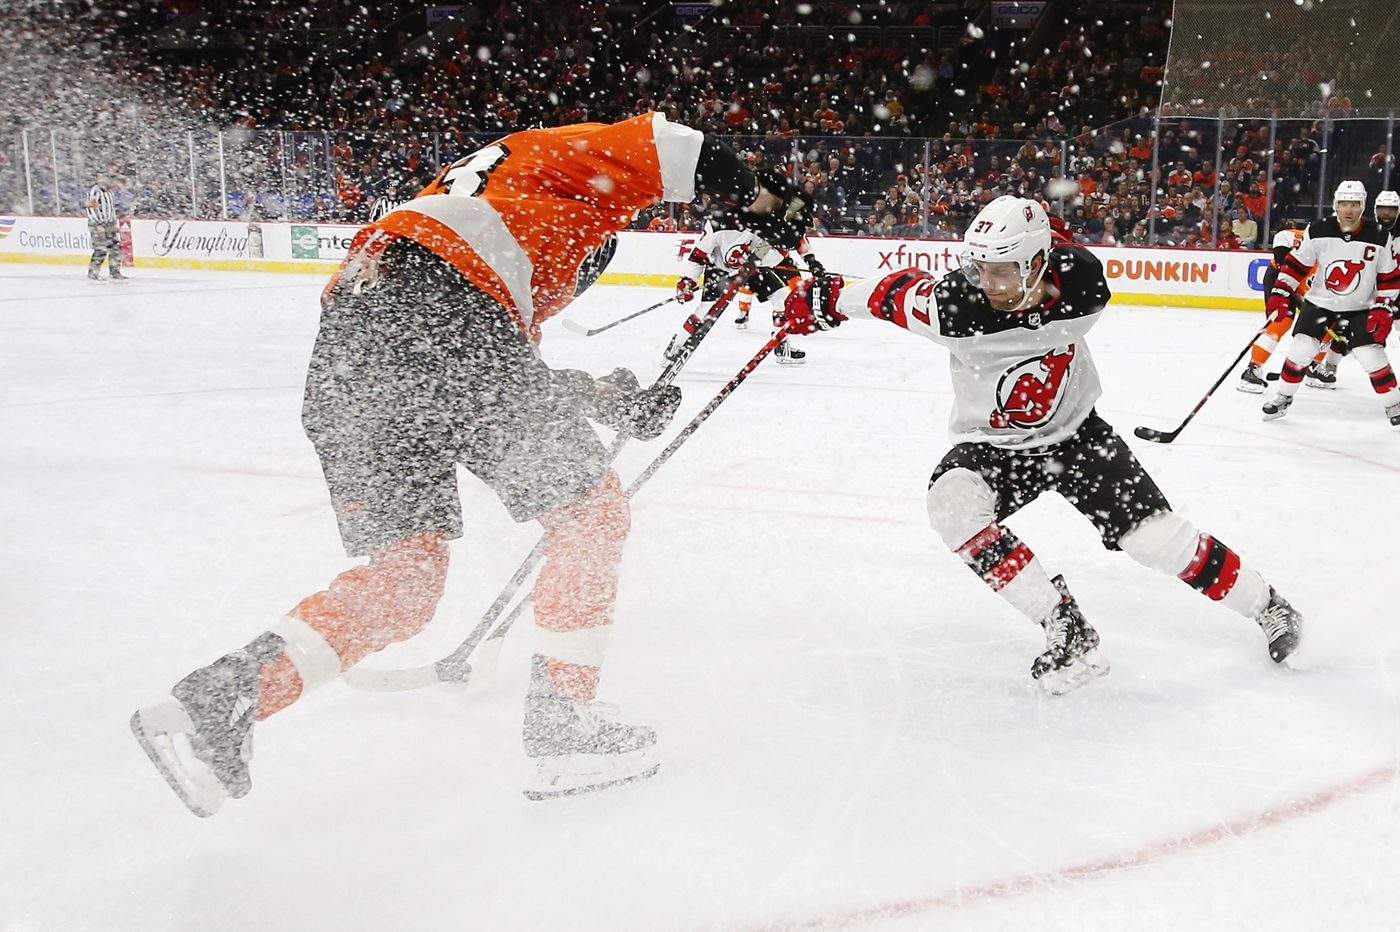 Problems for Flyers continue even after lopsided loss to New Jersey Devils